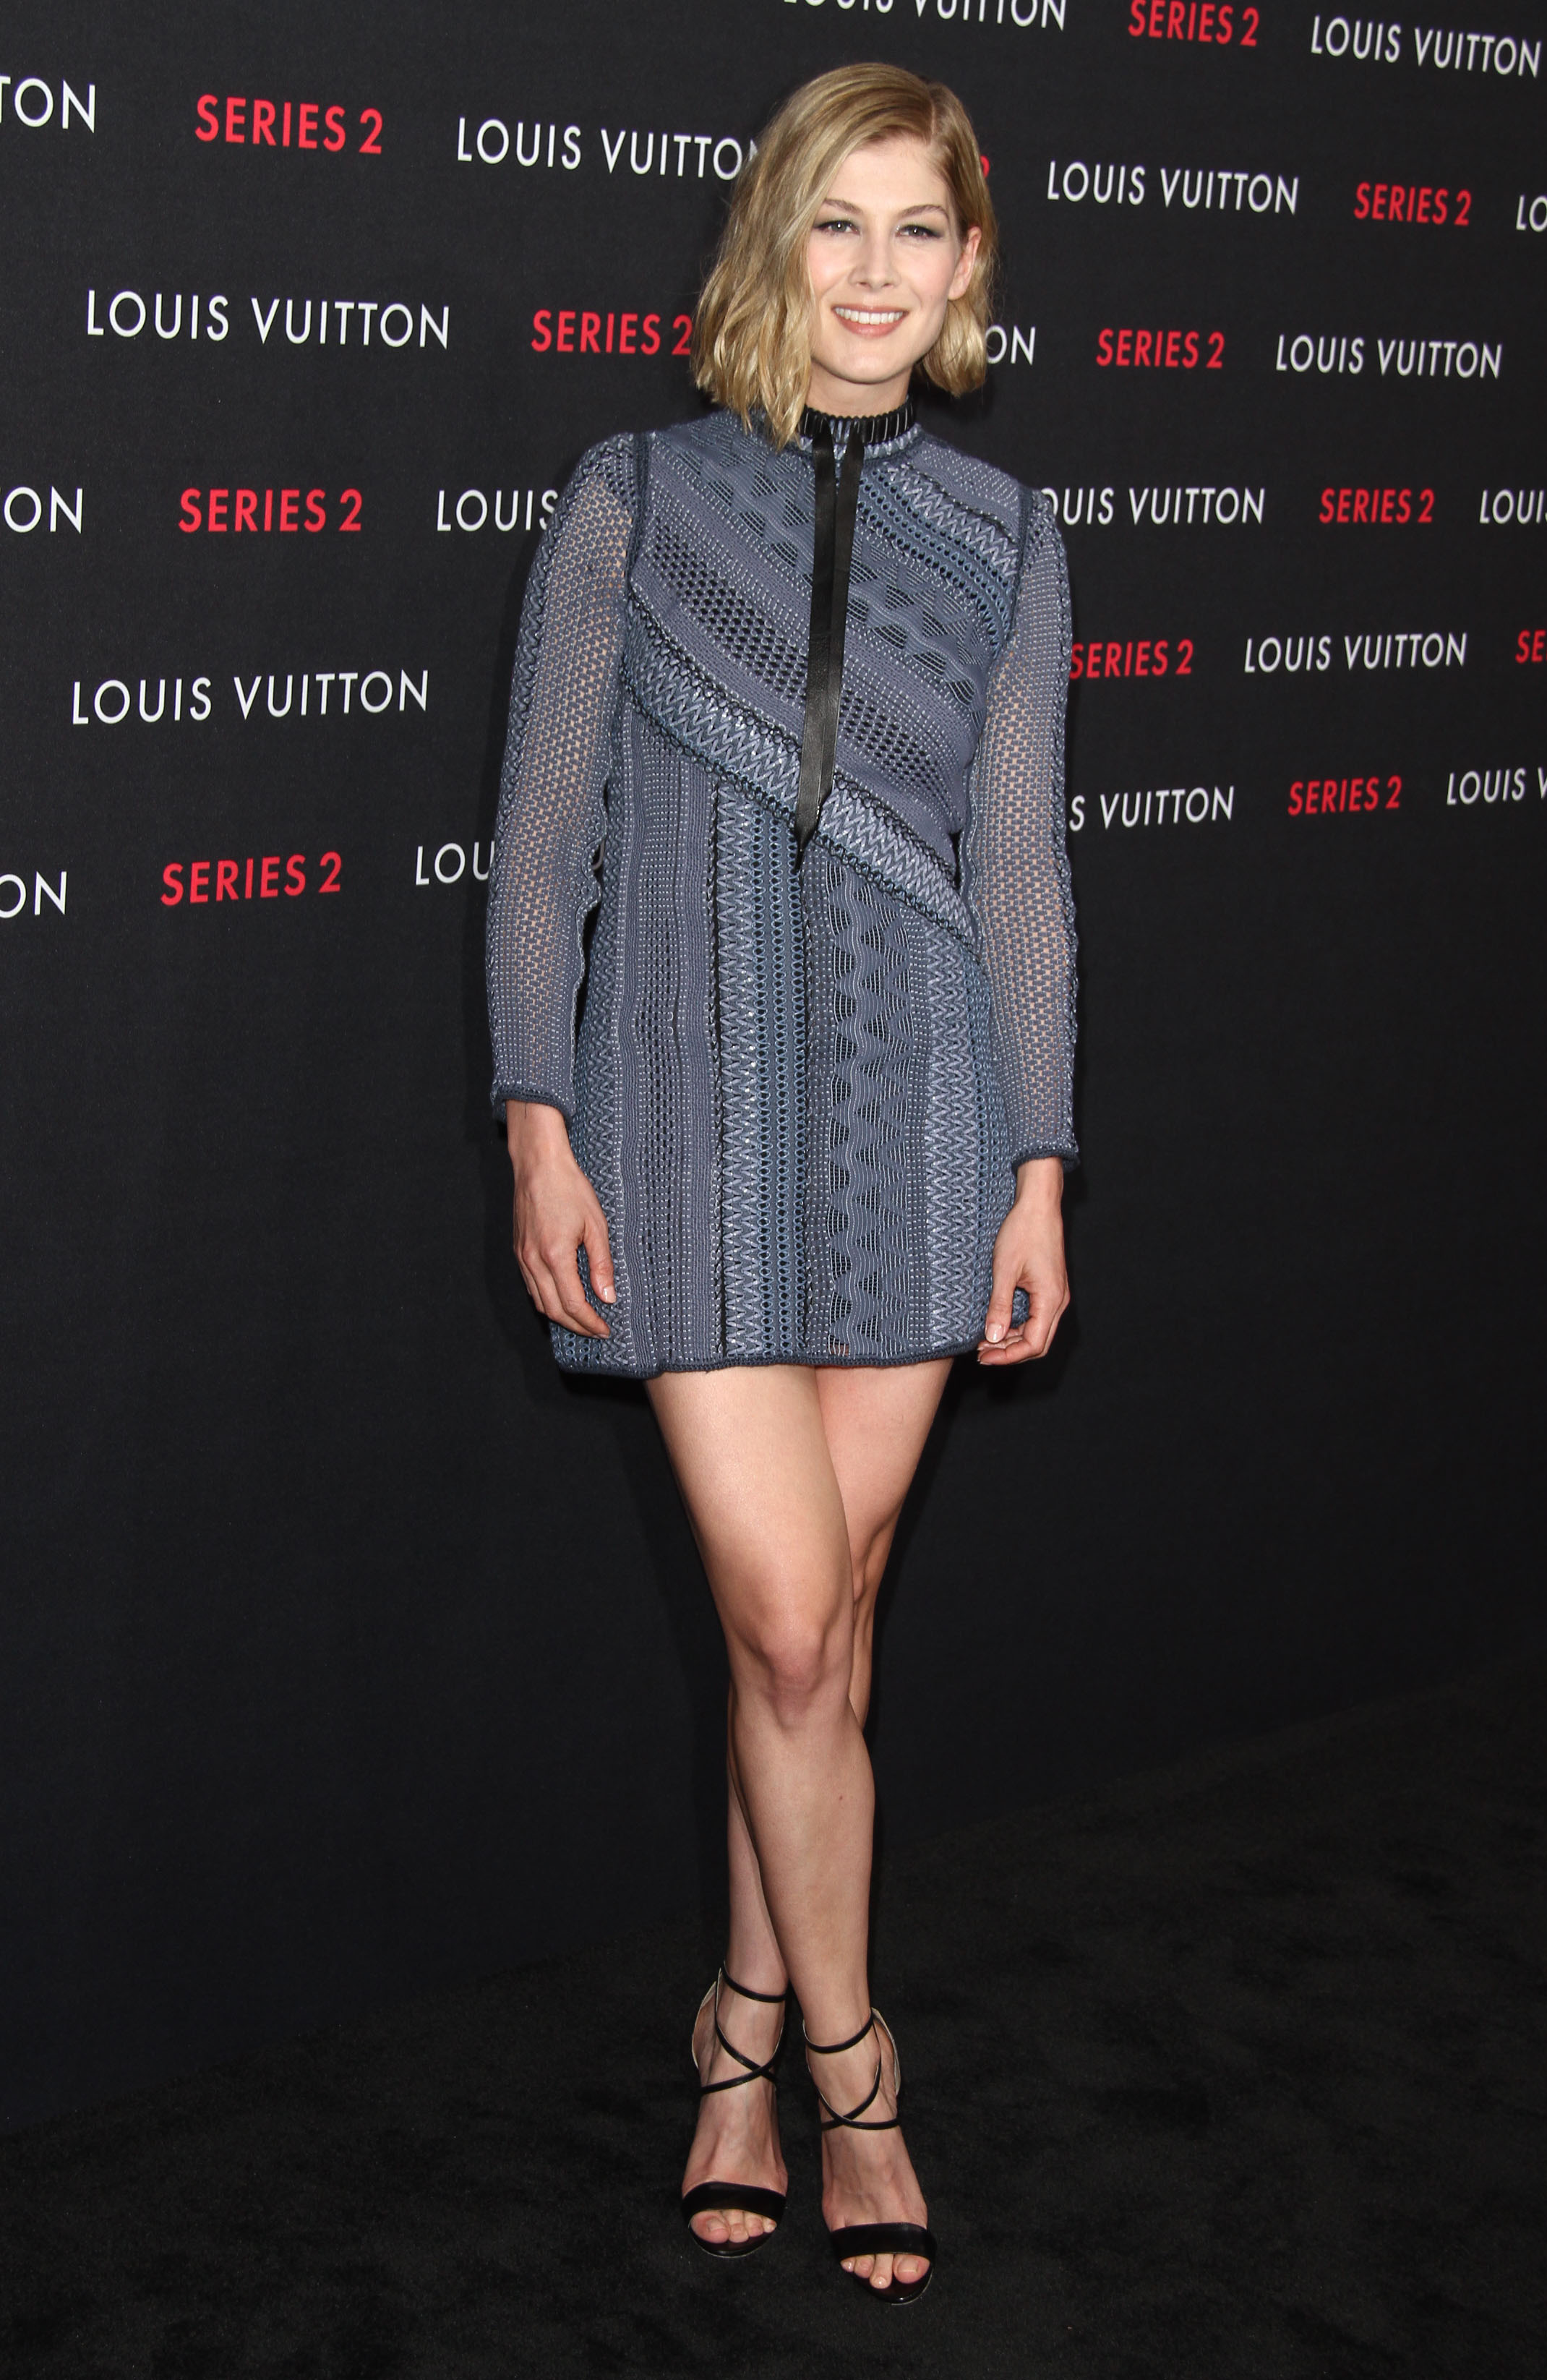 69a267319 Rosamund Pike at the Louis Vuitton 'Series 2' The Exhibition in Hollywood  02/05/15 Brian Atwood, Shoes Louis Vuitton, Dress